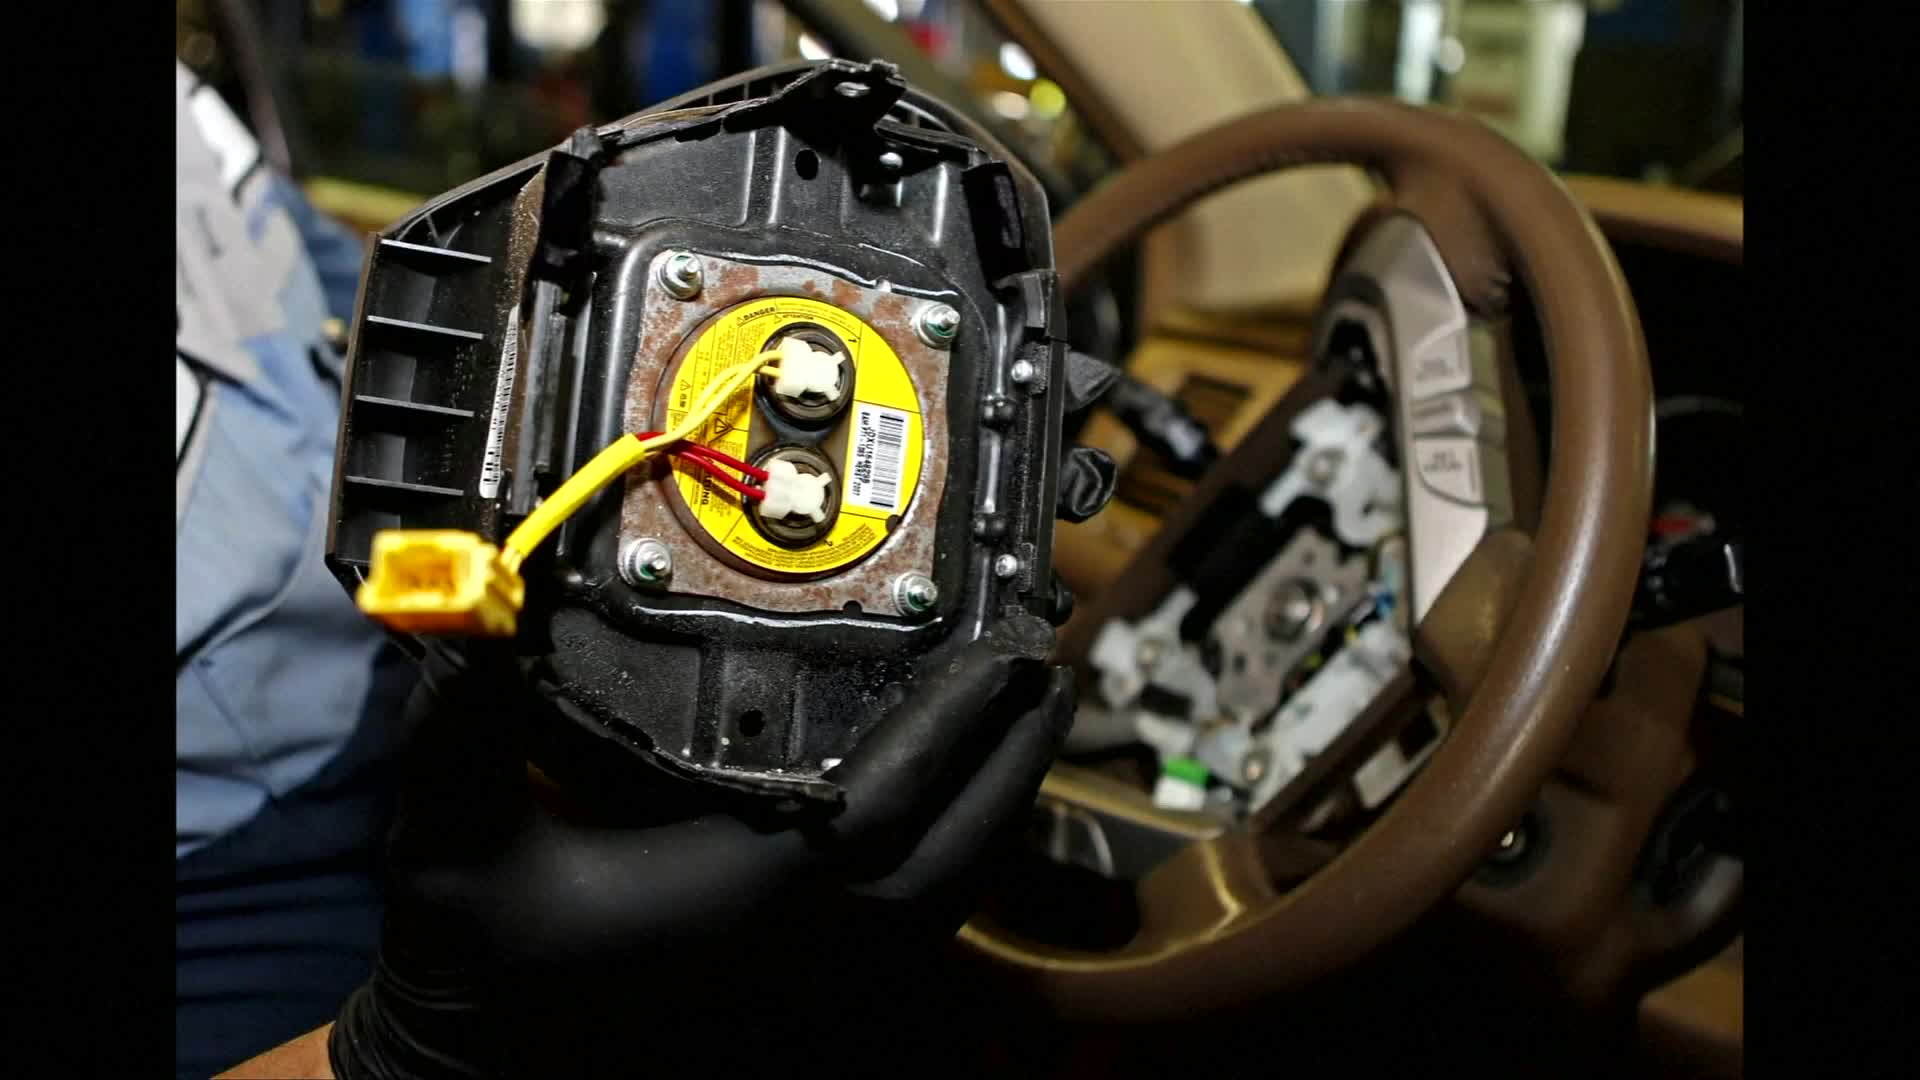 Takata boss to step down